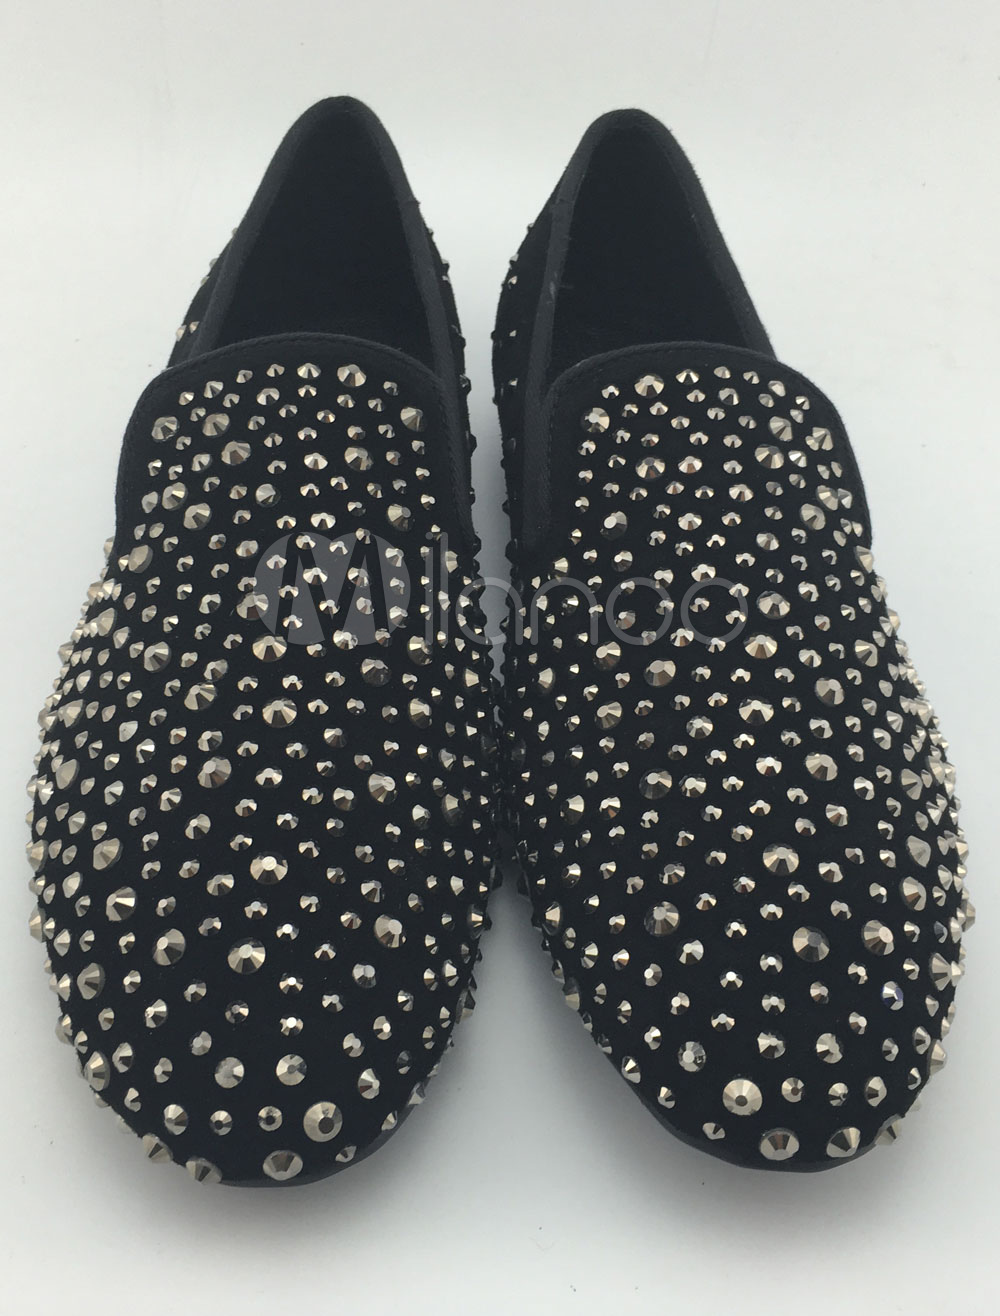 Black Men Loafers Suede Round Toe Beaded Slip On Formal Shoes